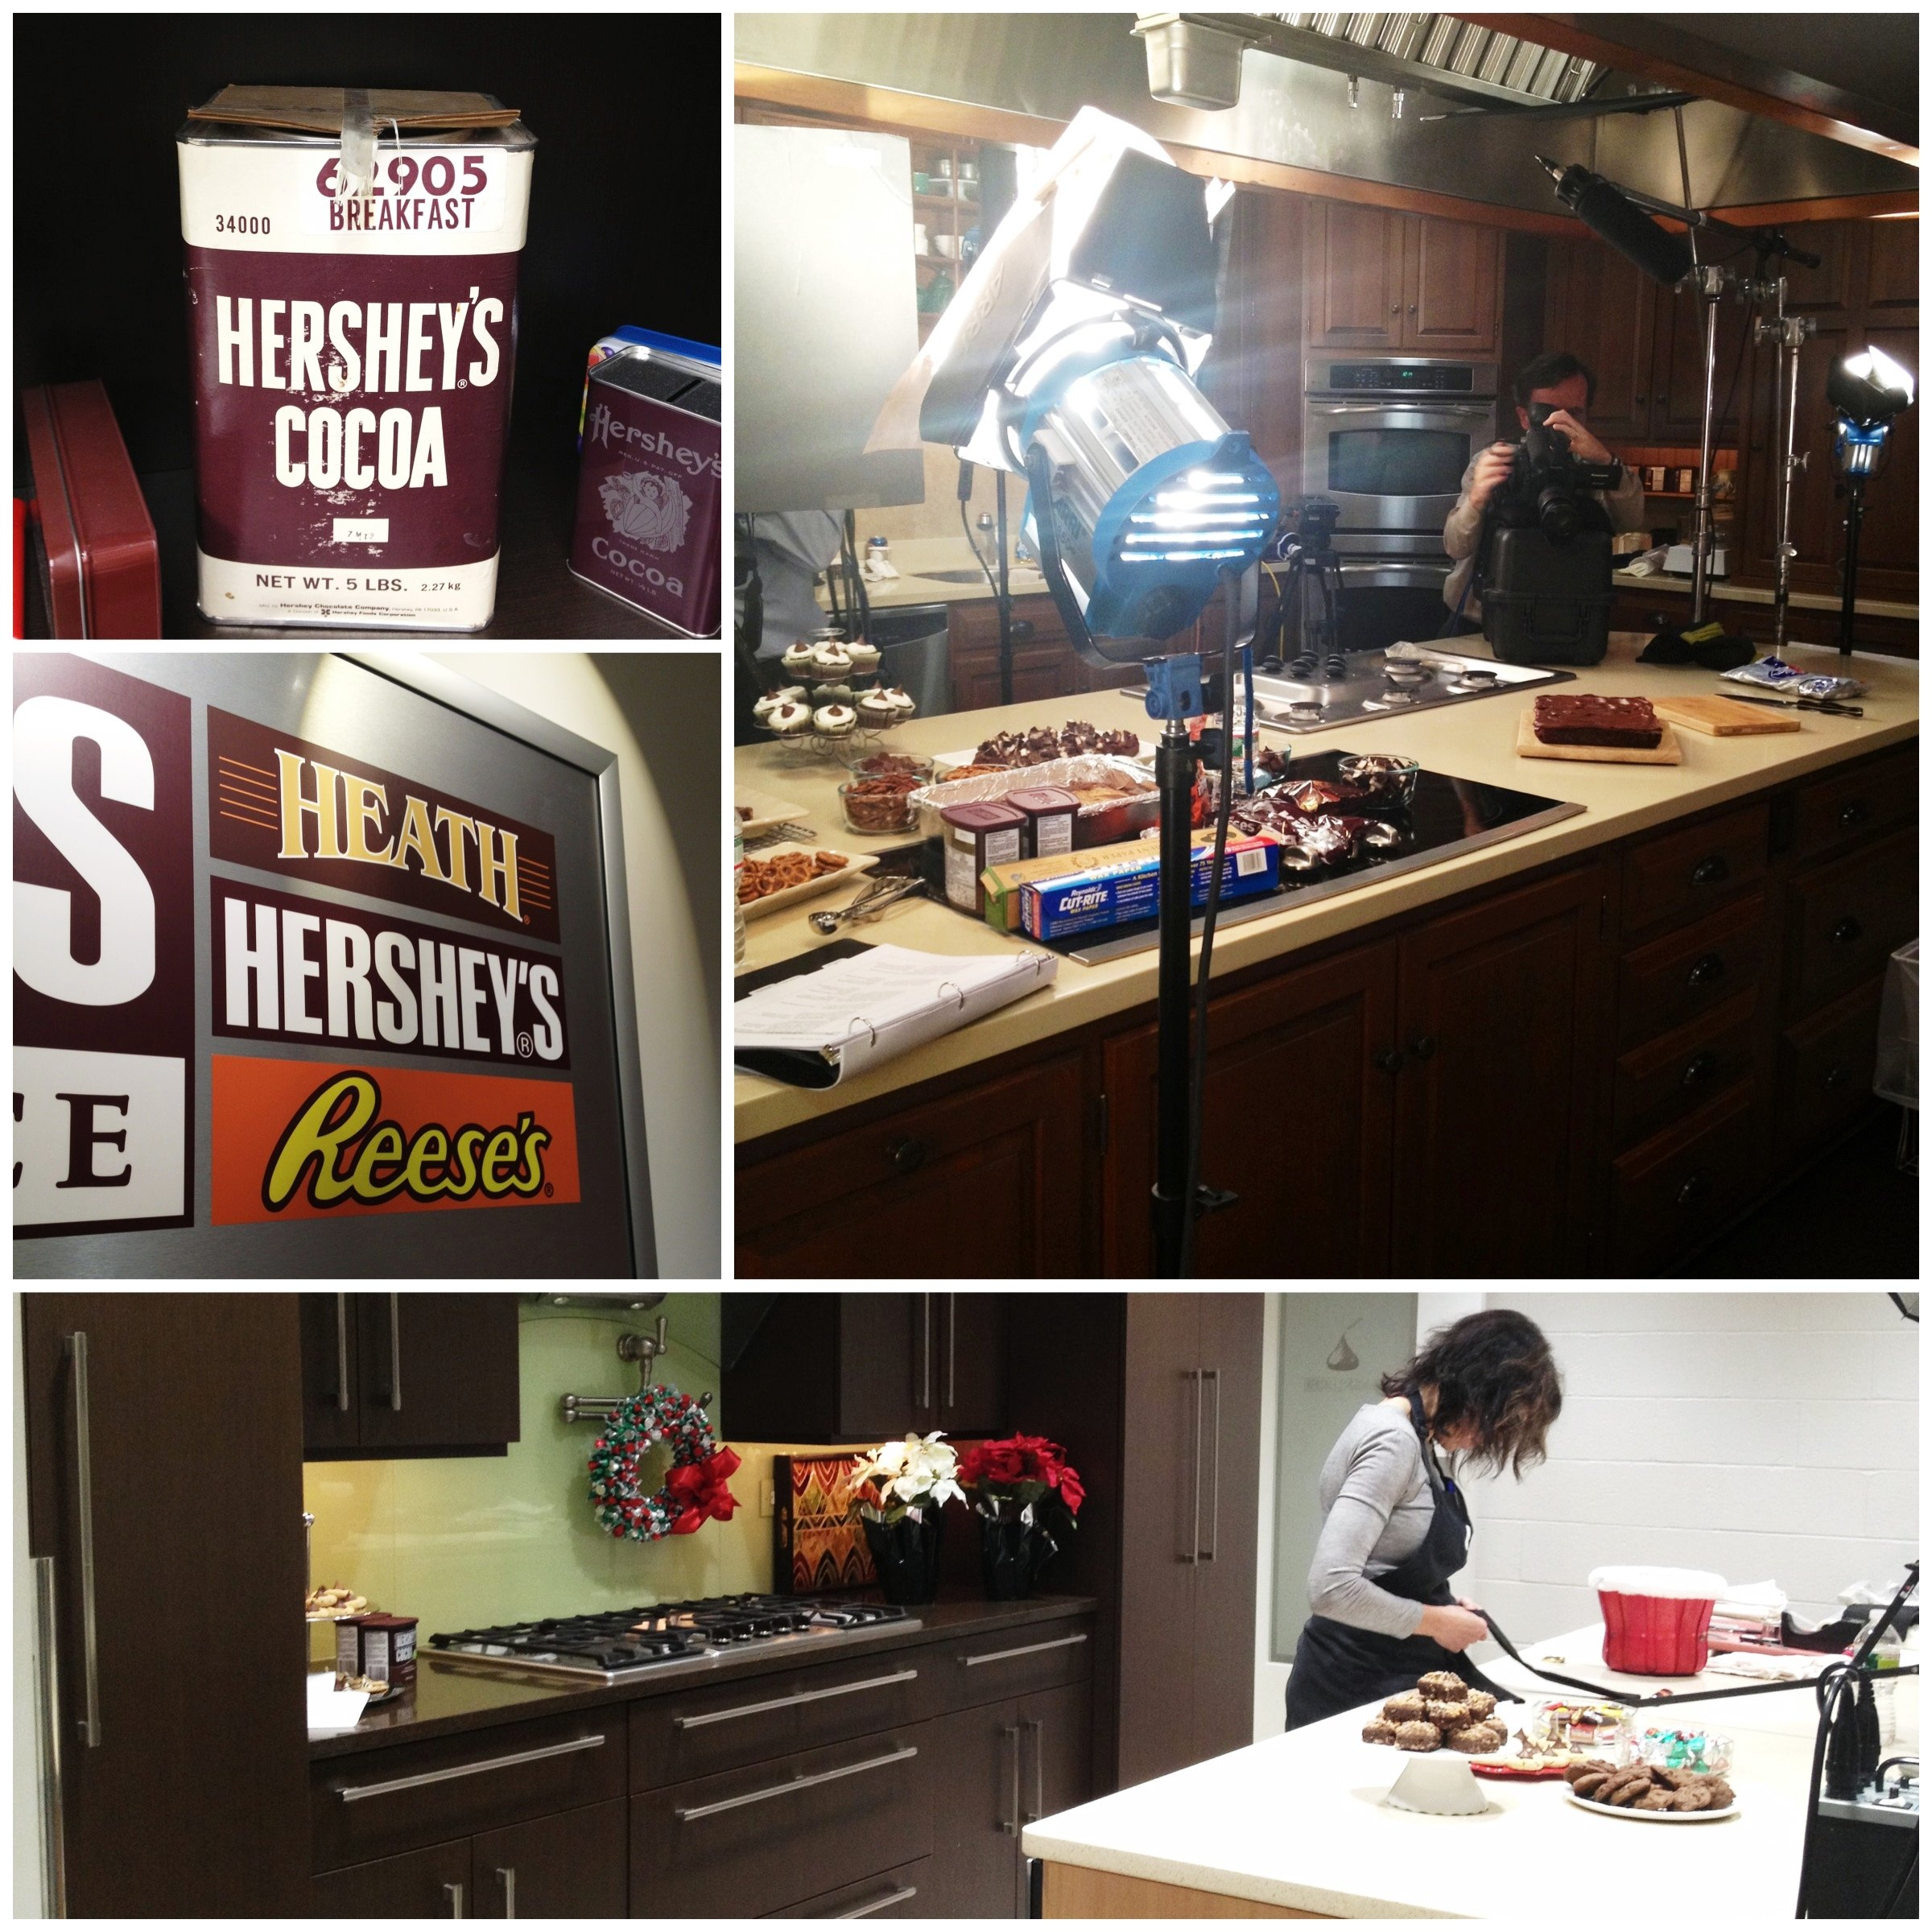 My Trip To The Hershey's HQ!